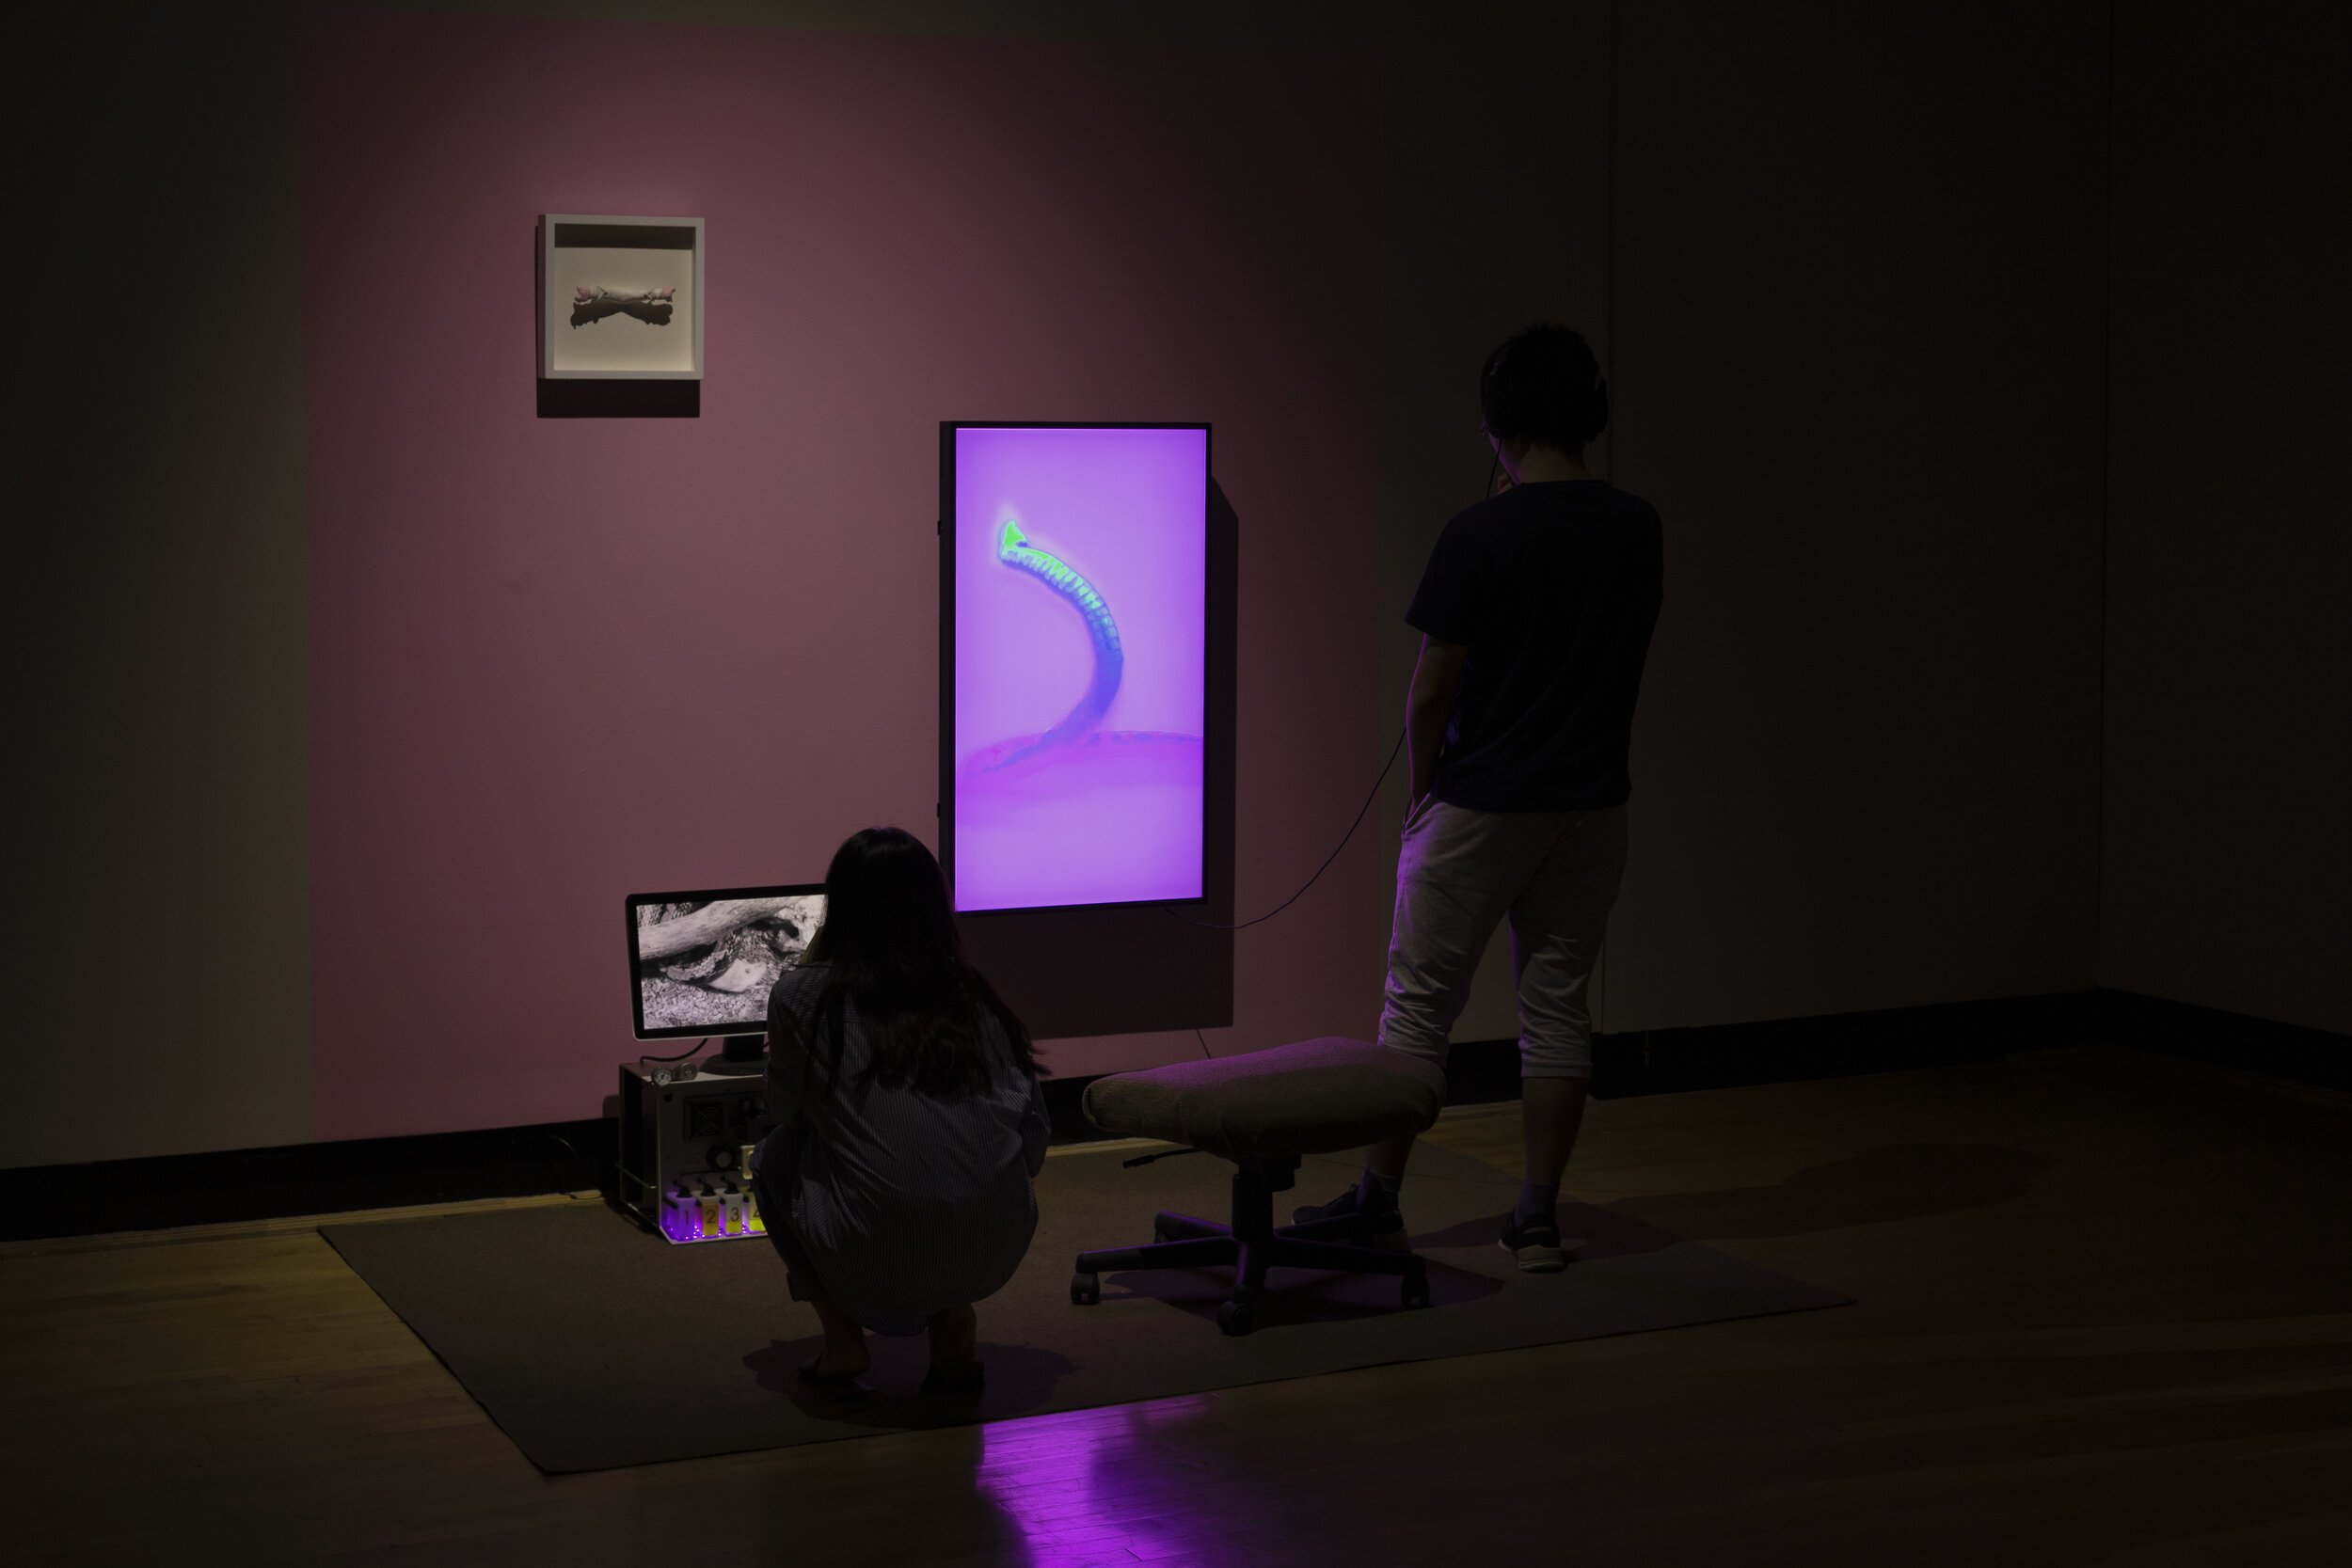 Pilgrimage to Hell and Back: An Ad for Spatial and Temporal Relocation  (Installation view). Single-channel video, headphones, monitor, extension cord, paint, carpet, seat, radiometer, plaster snake penis. Dimensions variable. 2019